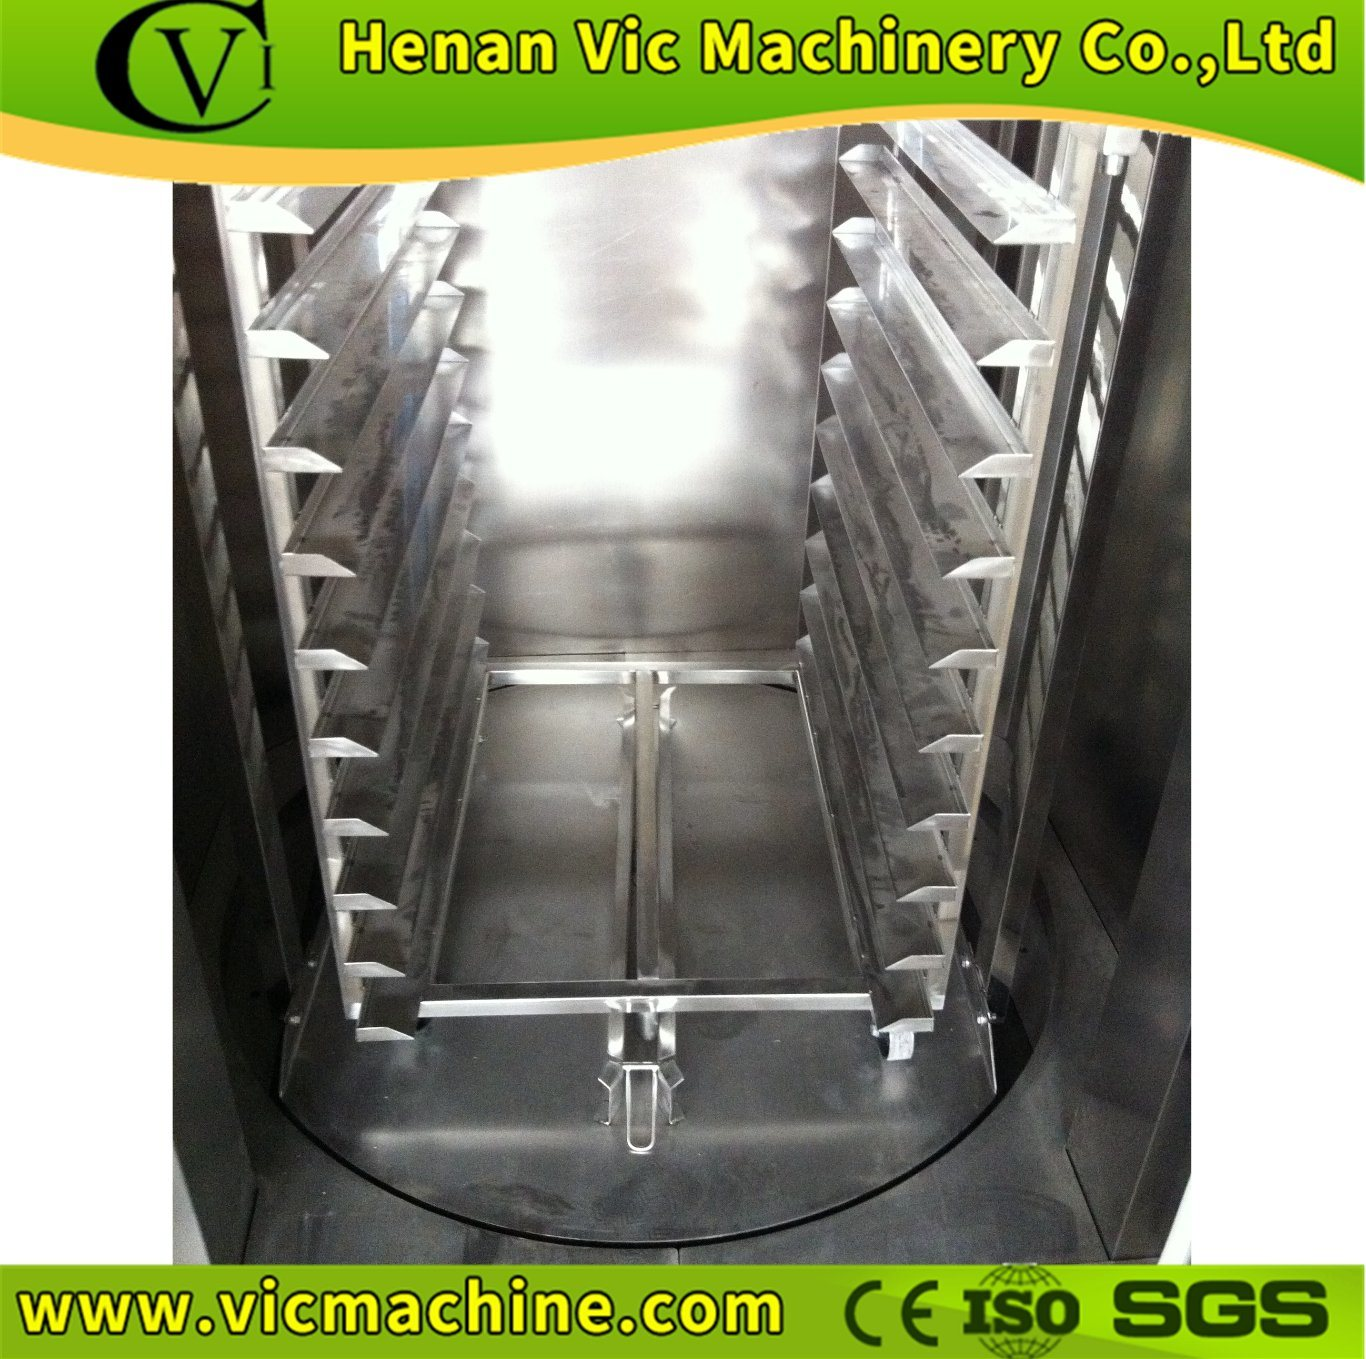 CE Approved Electric Rotary Oven with 36 Trays (all stainless steel) pictures & photos